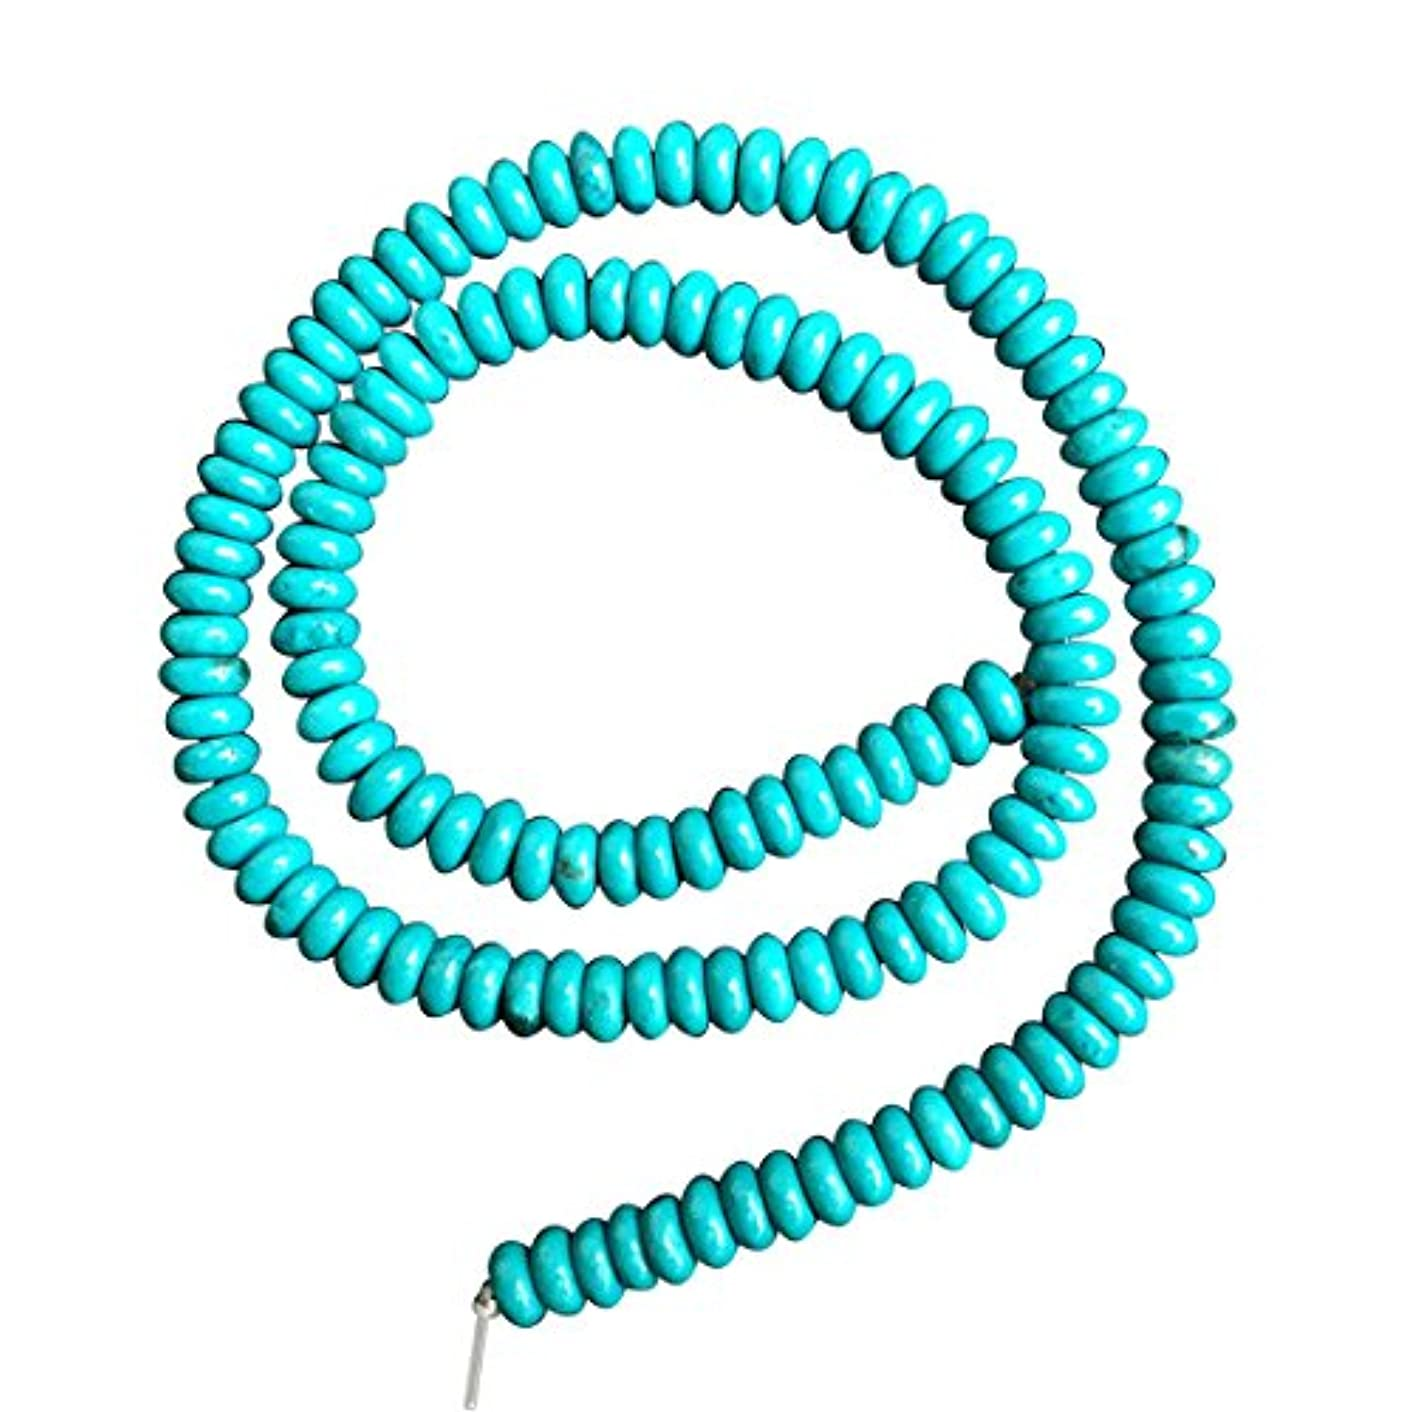 2 Strands Natural Turquoise Gemstone RondelleLoose Beads 5mm x 3mm for Jewelry Making 15.5